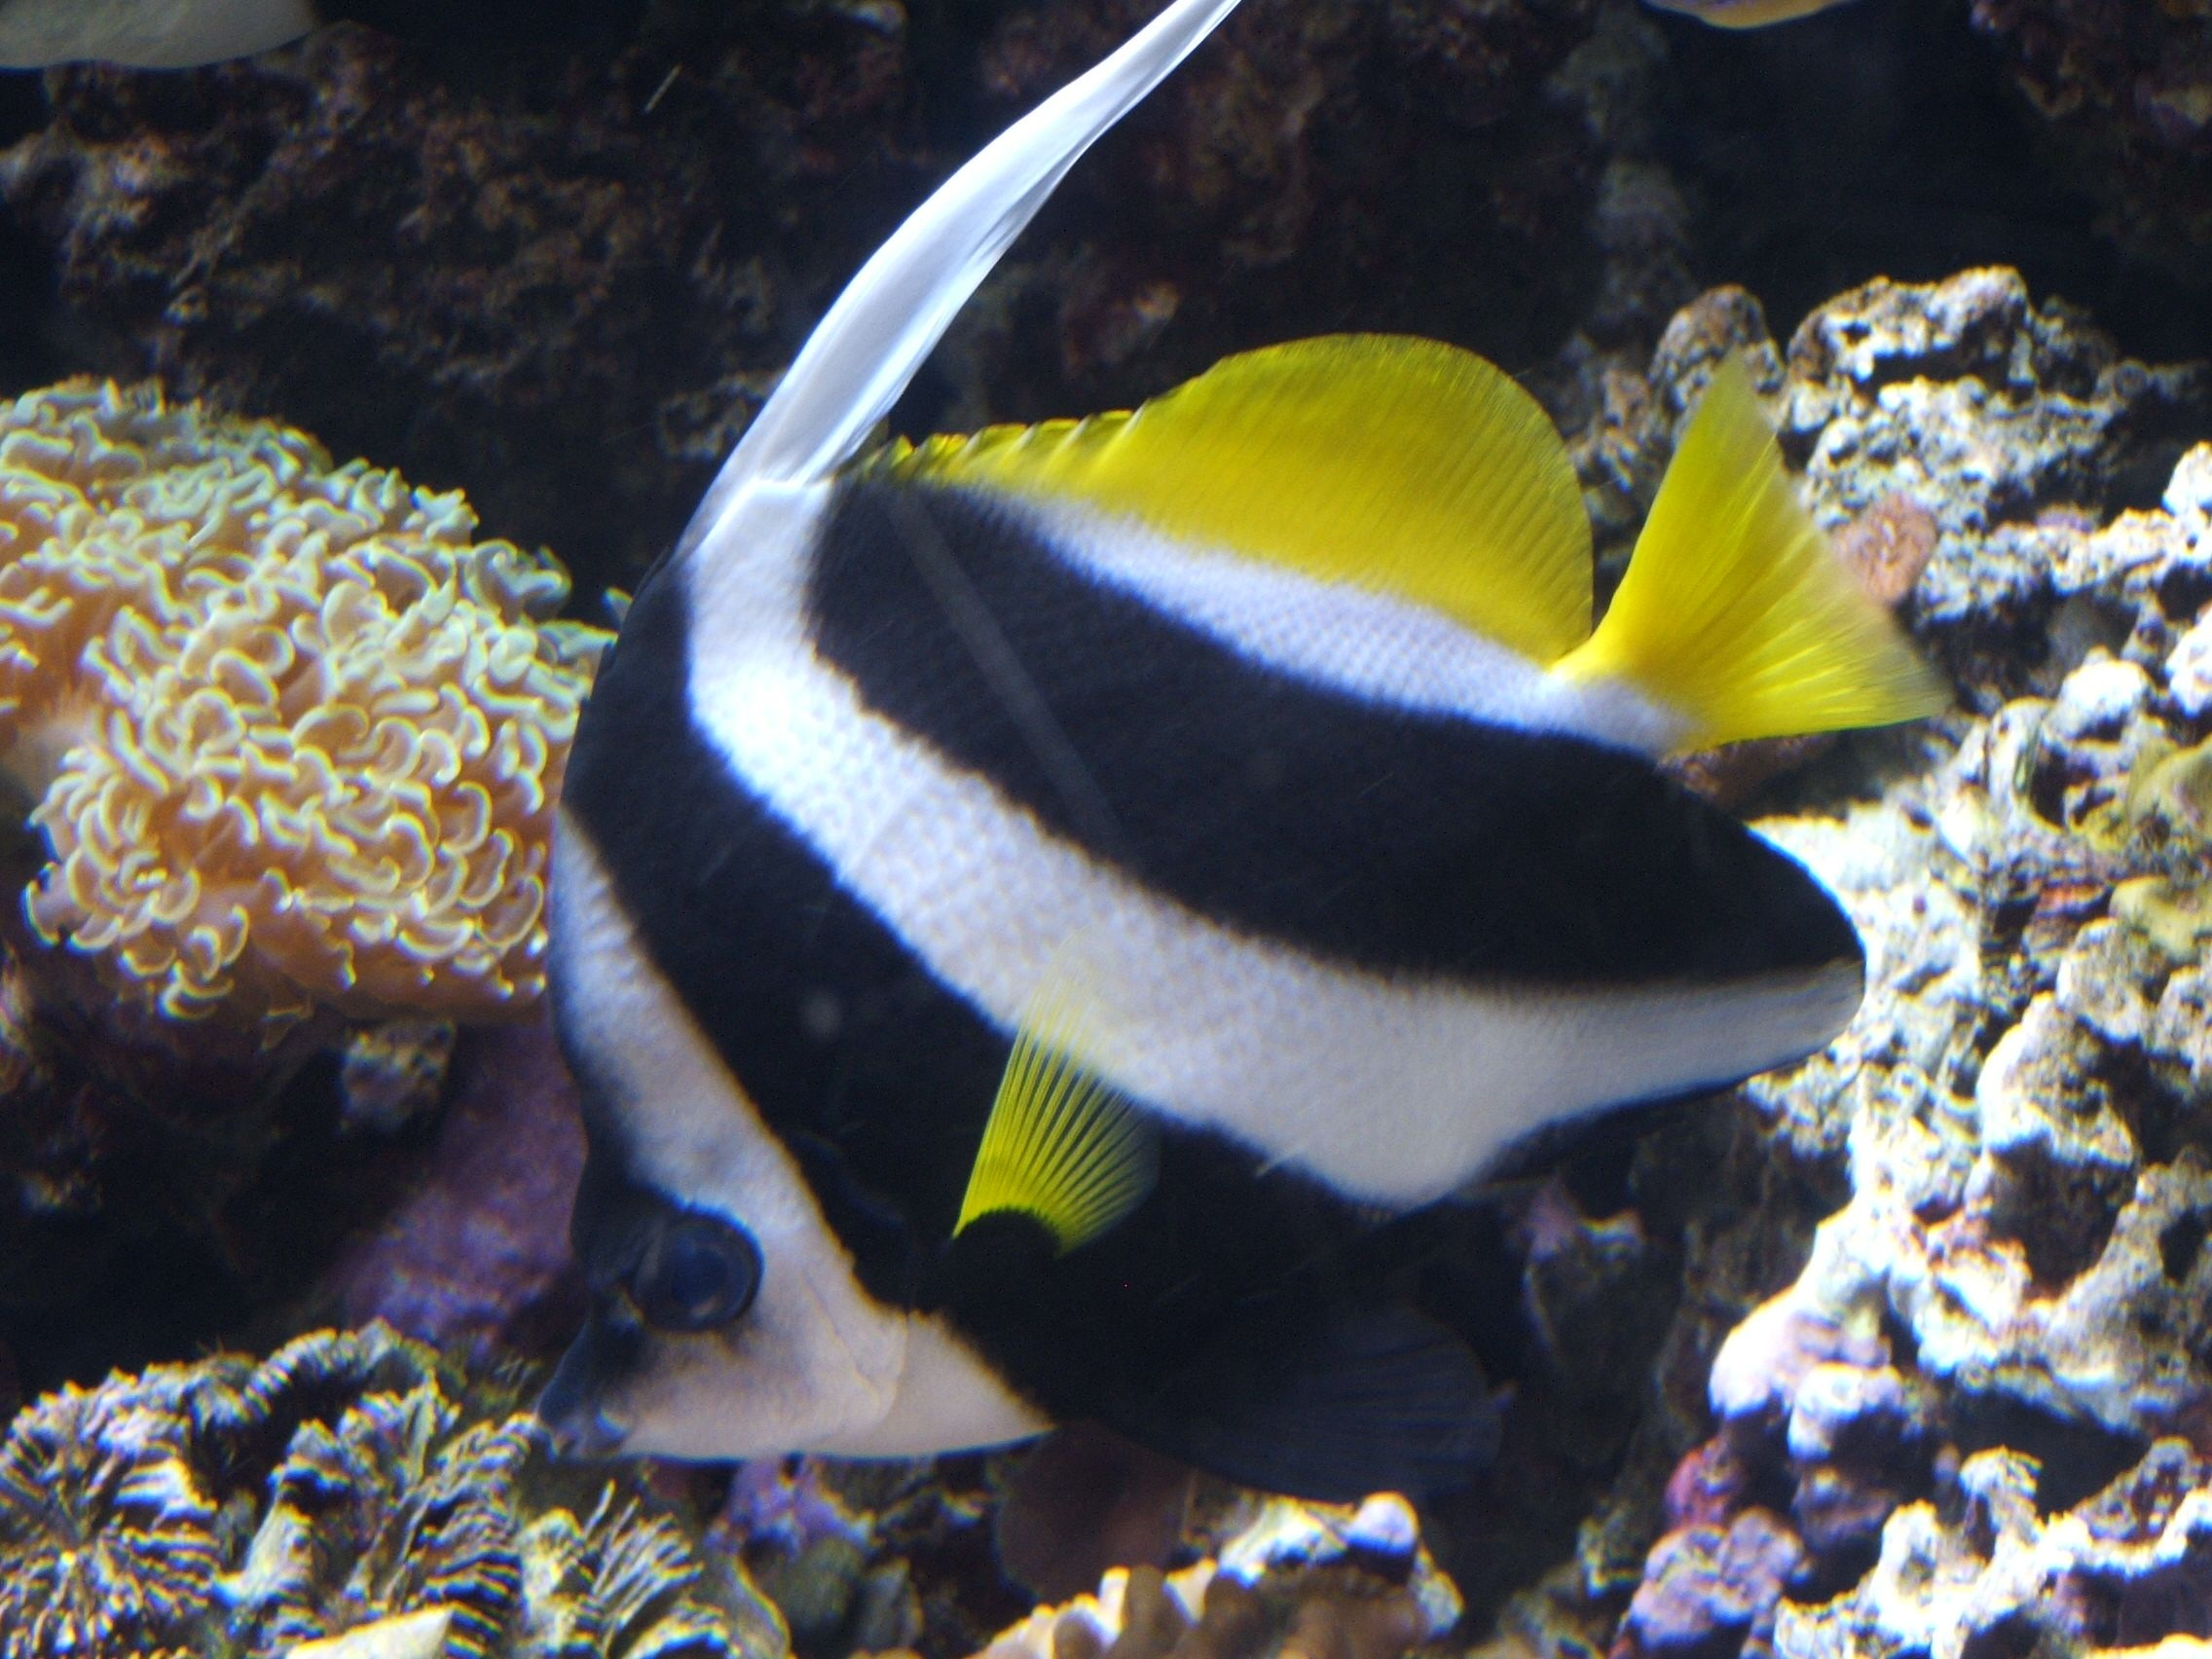 Heniochus Acuminatus Description Longfin Bannerfish Heniochus Acuminatus 01 Jpg Fish Marine Fish Fish Pet